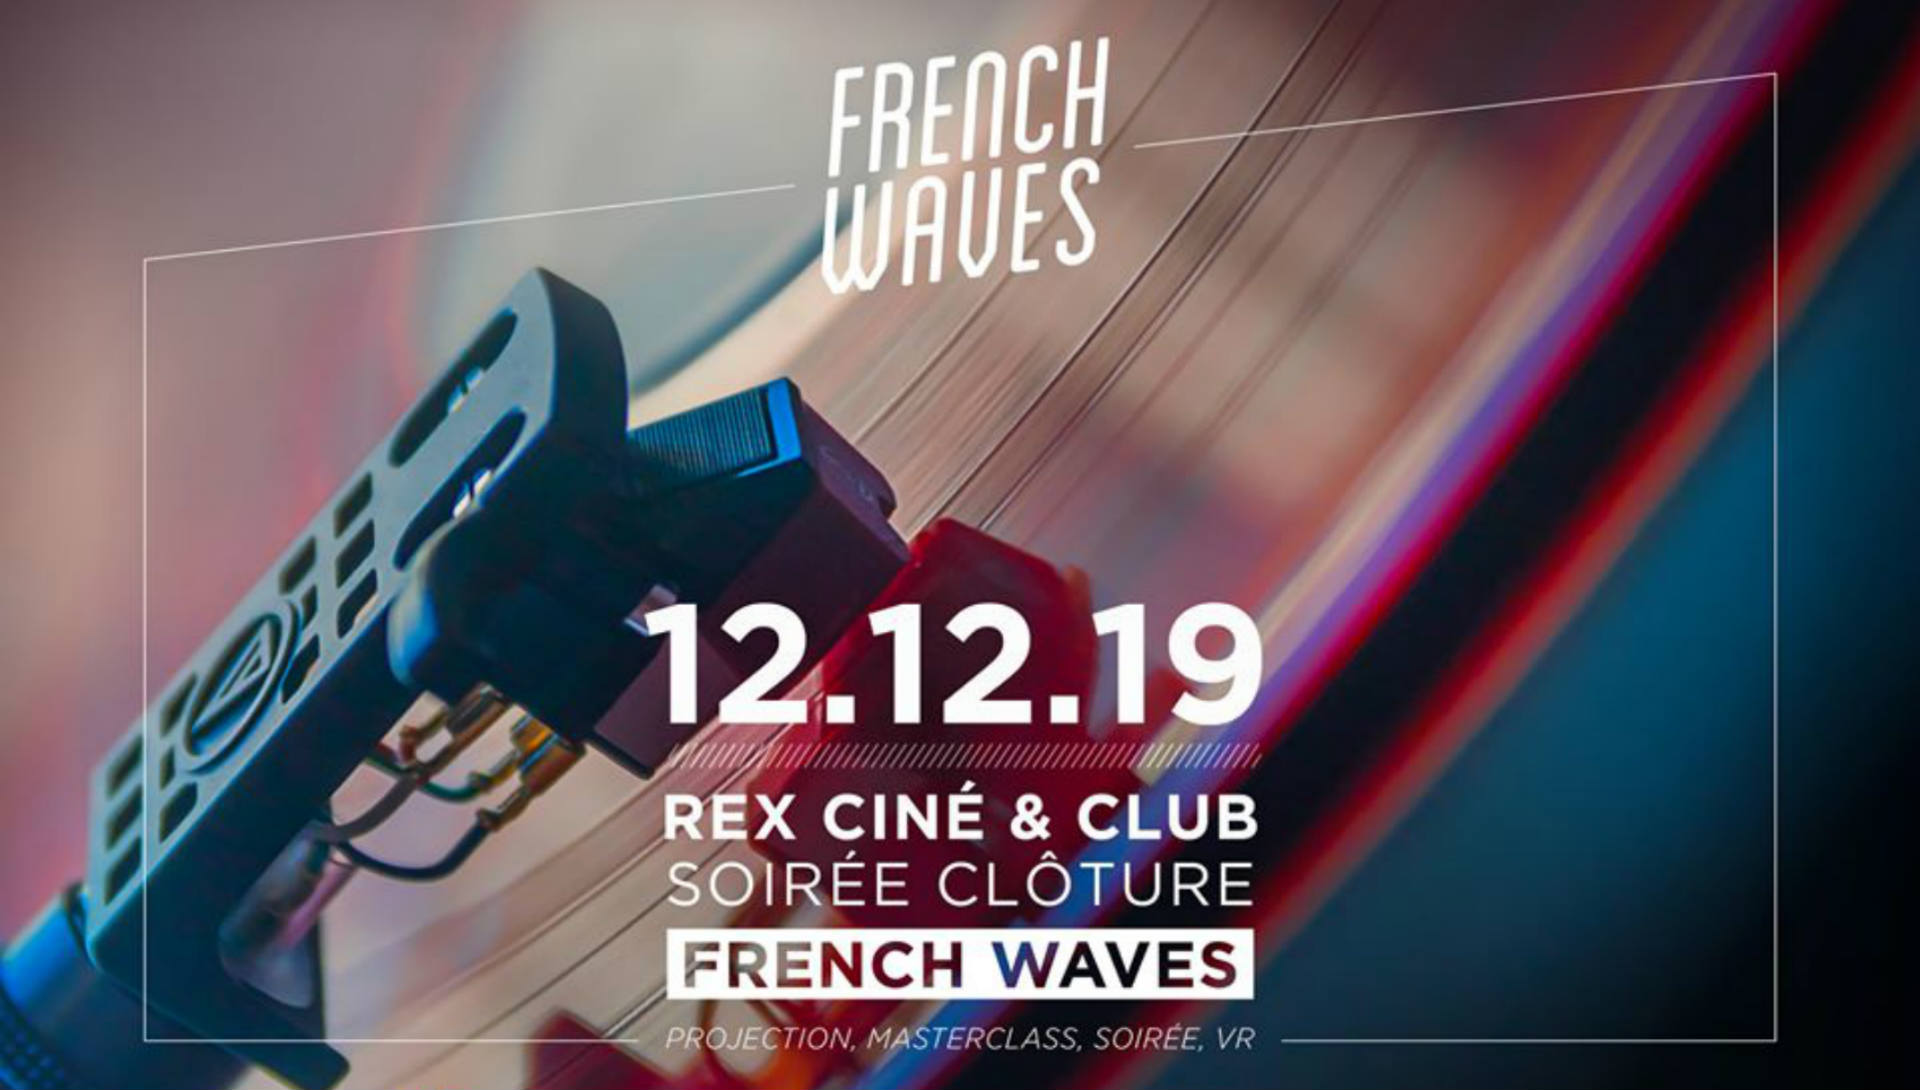 French Waves, soirée de clôture - Thomas Smith - Zorba Group - DR